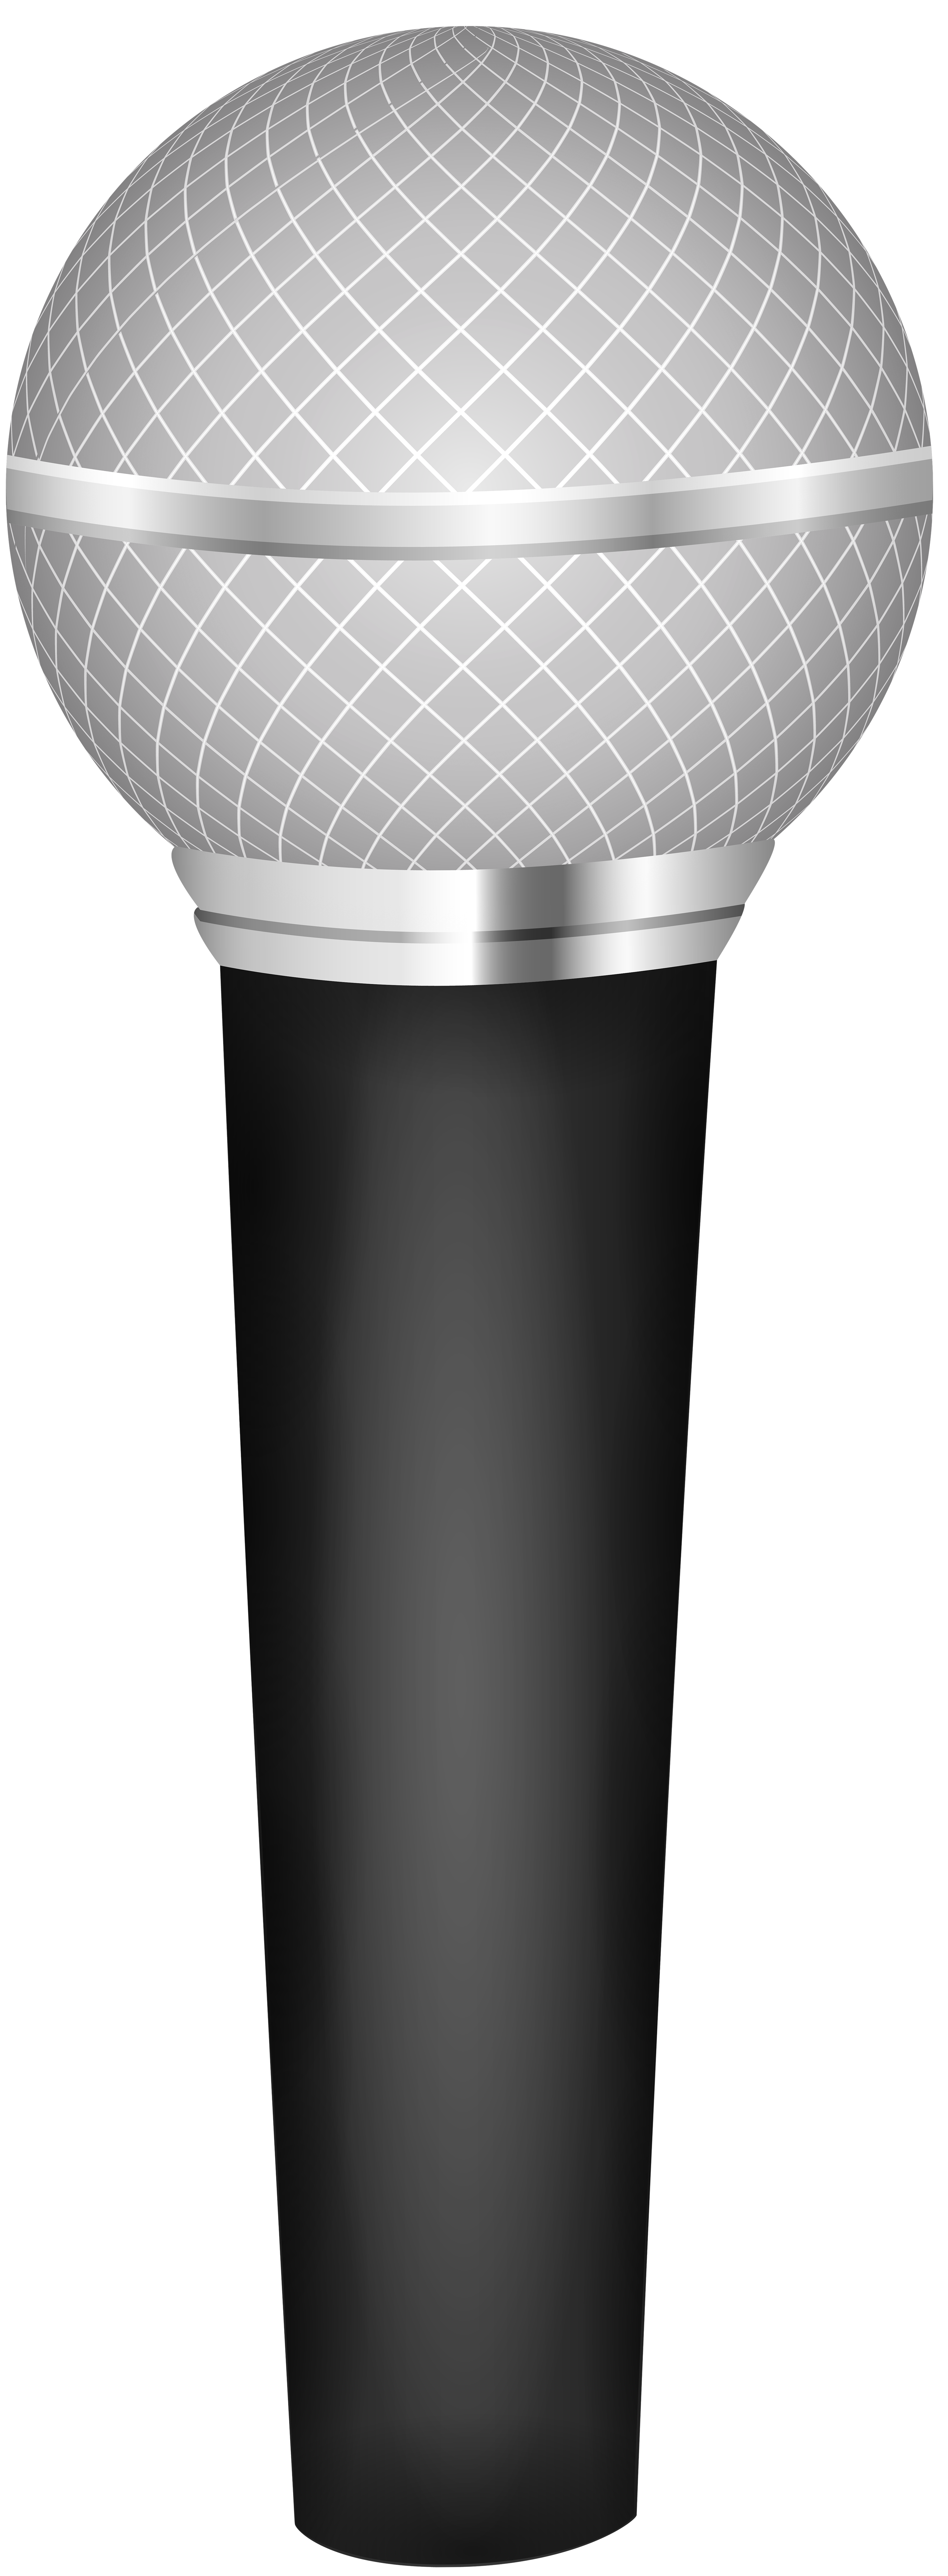 Cartoon microphone png. Clip art image gallery